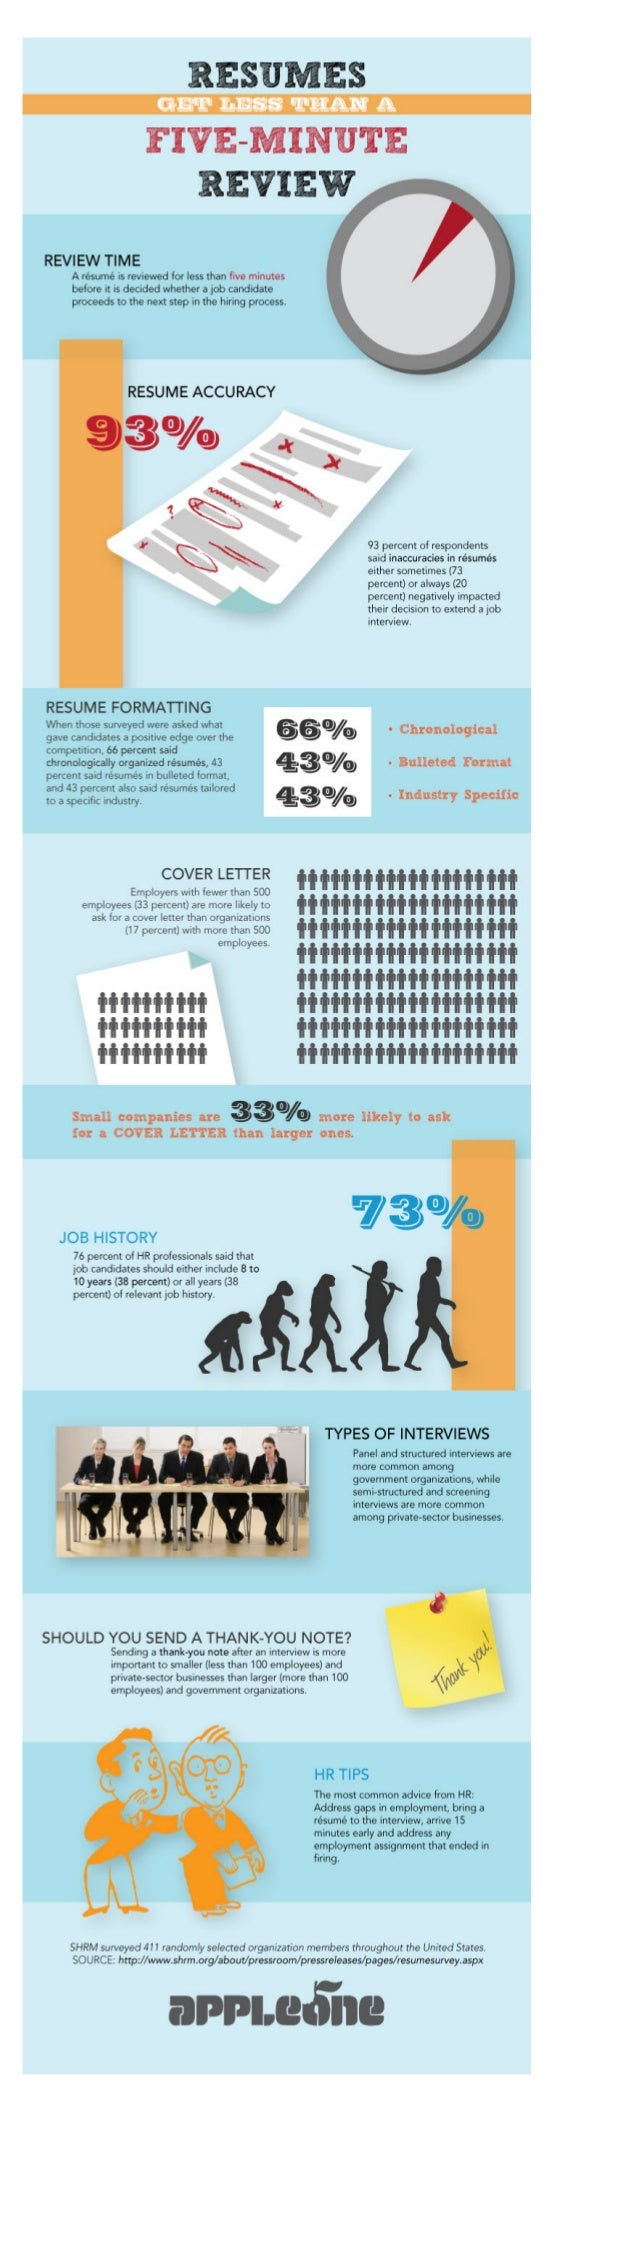 Resumes Get Less than a 5 Minute Review - an Infographic from AppleOne